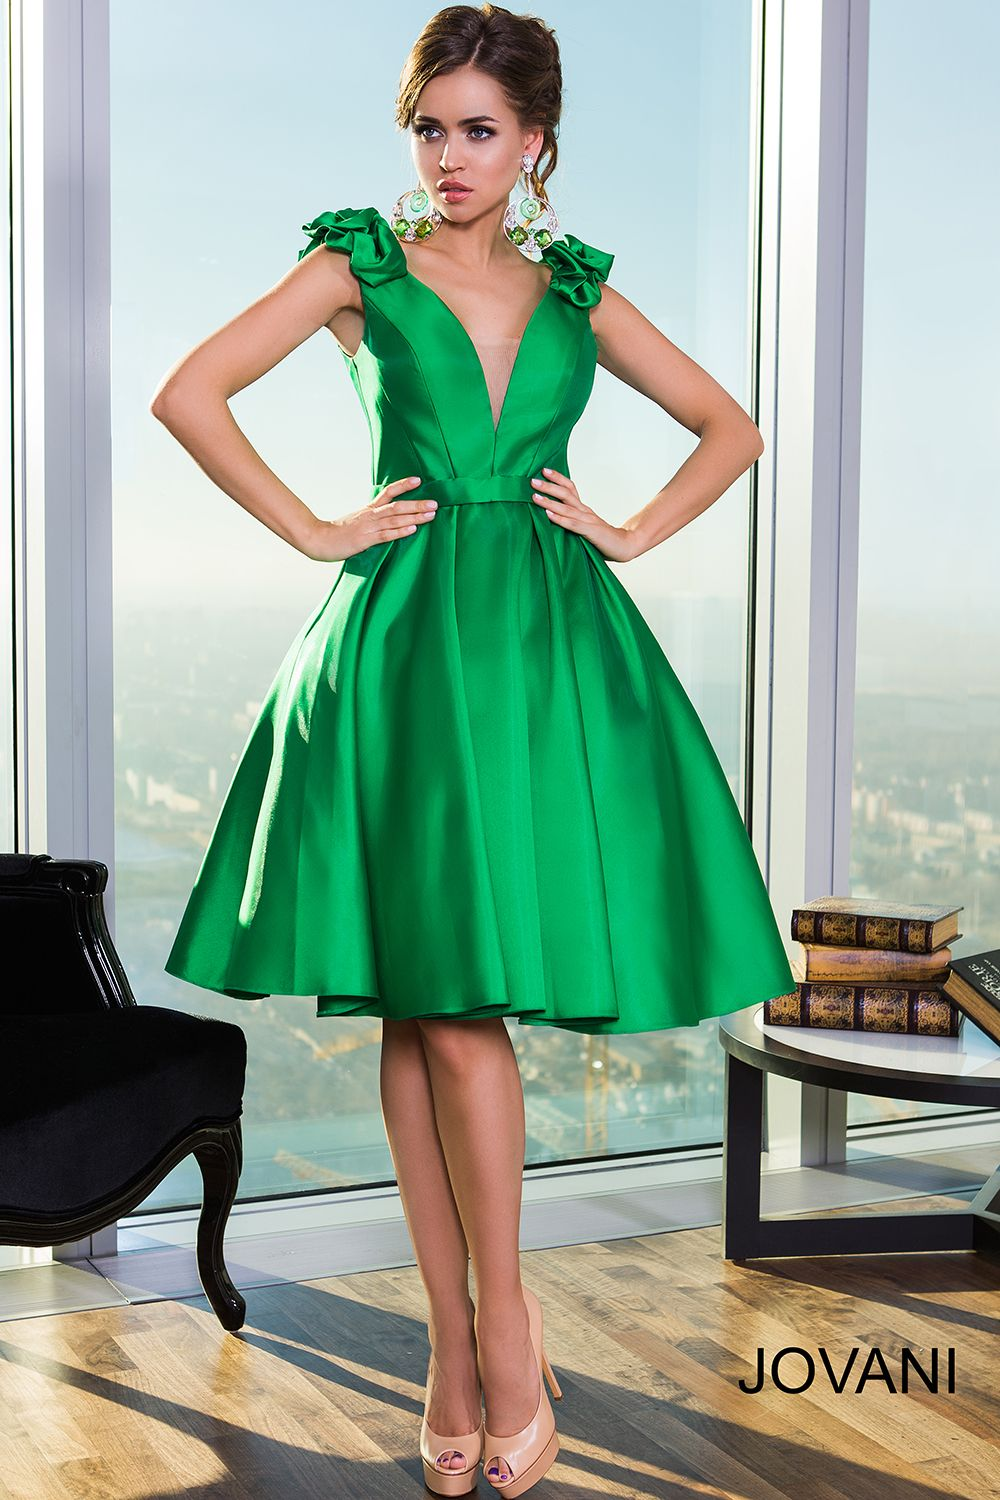 Bottle green prom dress  Sleeveless Fit and Flare Short Dress   cloth  Pinterest